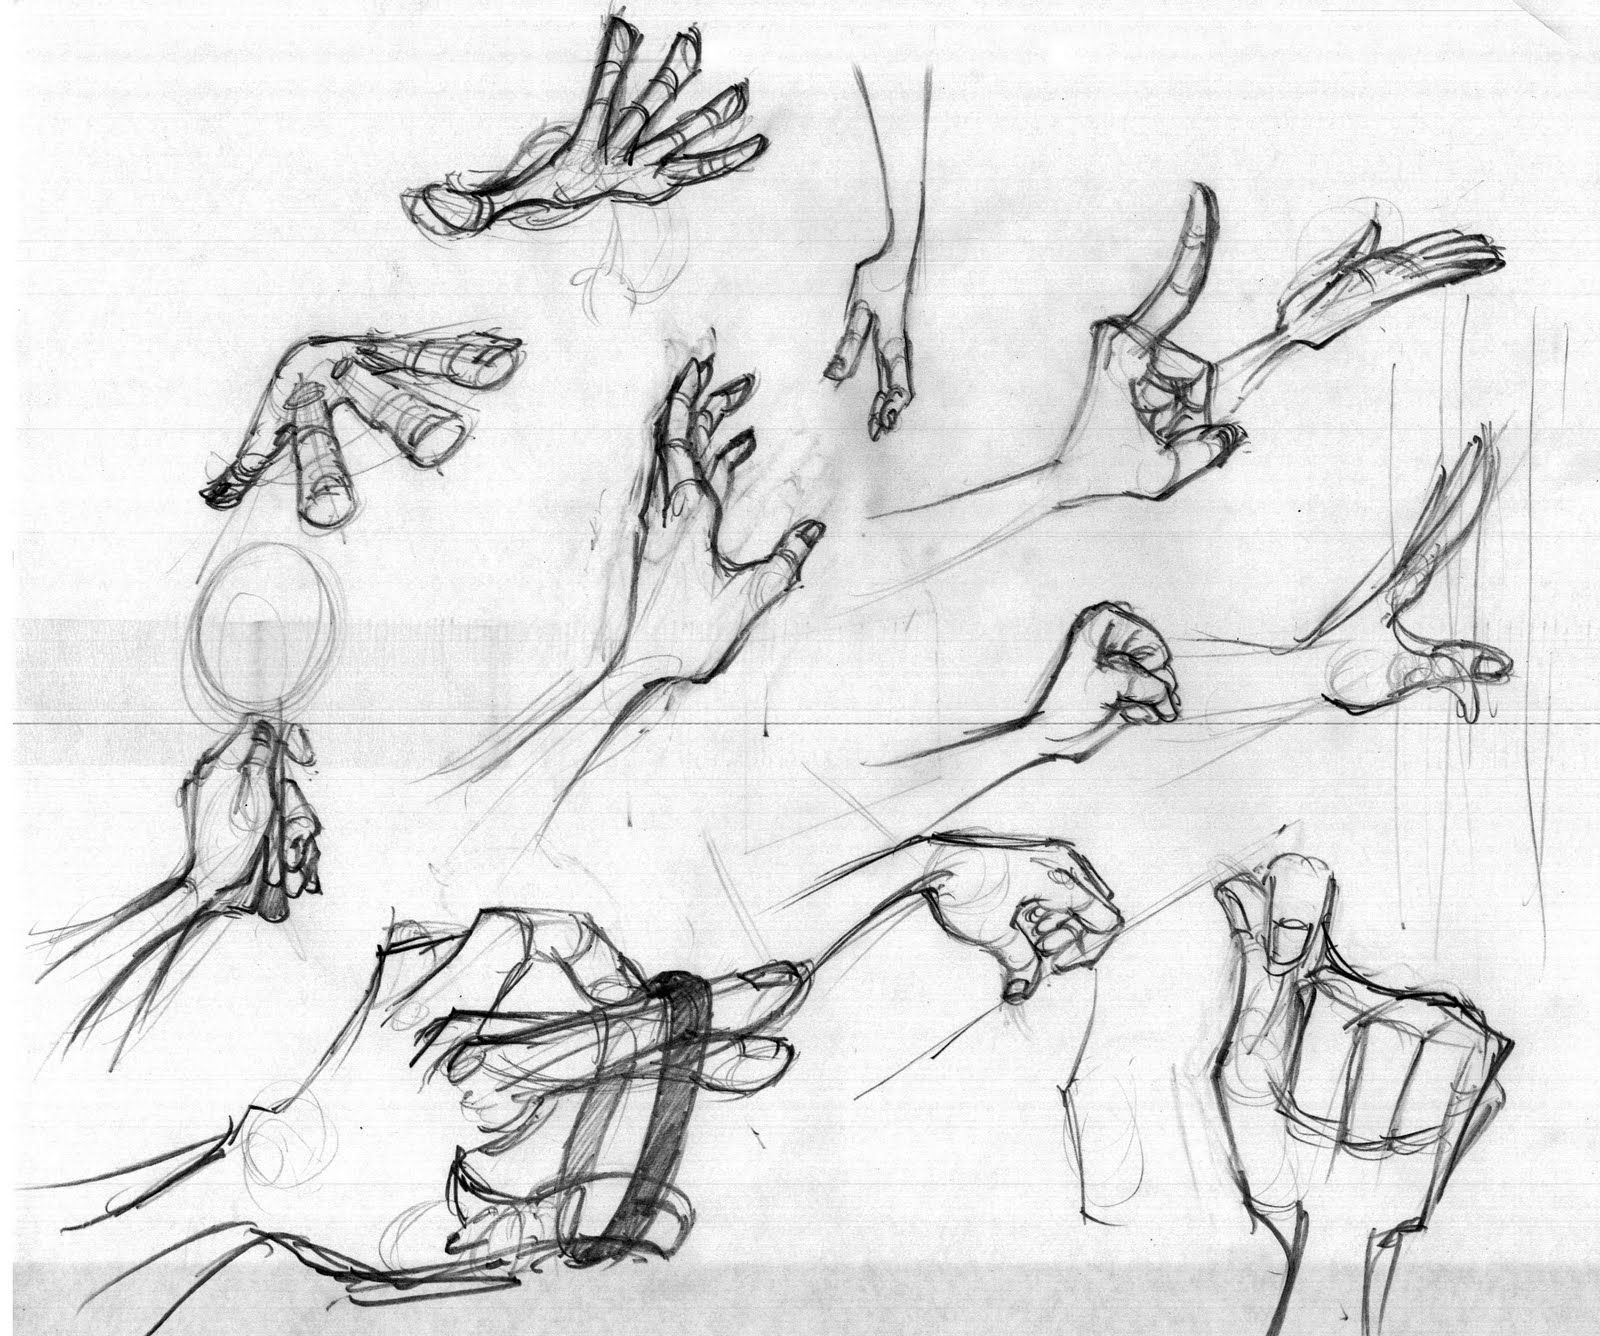 THE GREEDY PENCIL: Hand drawings